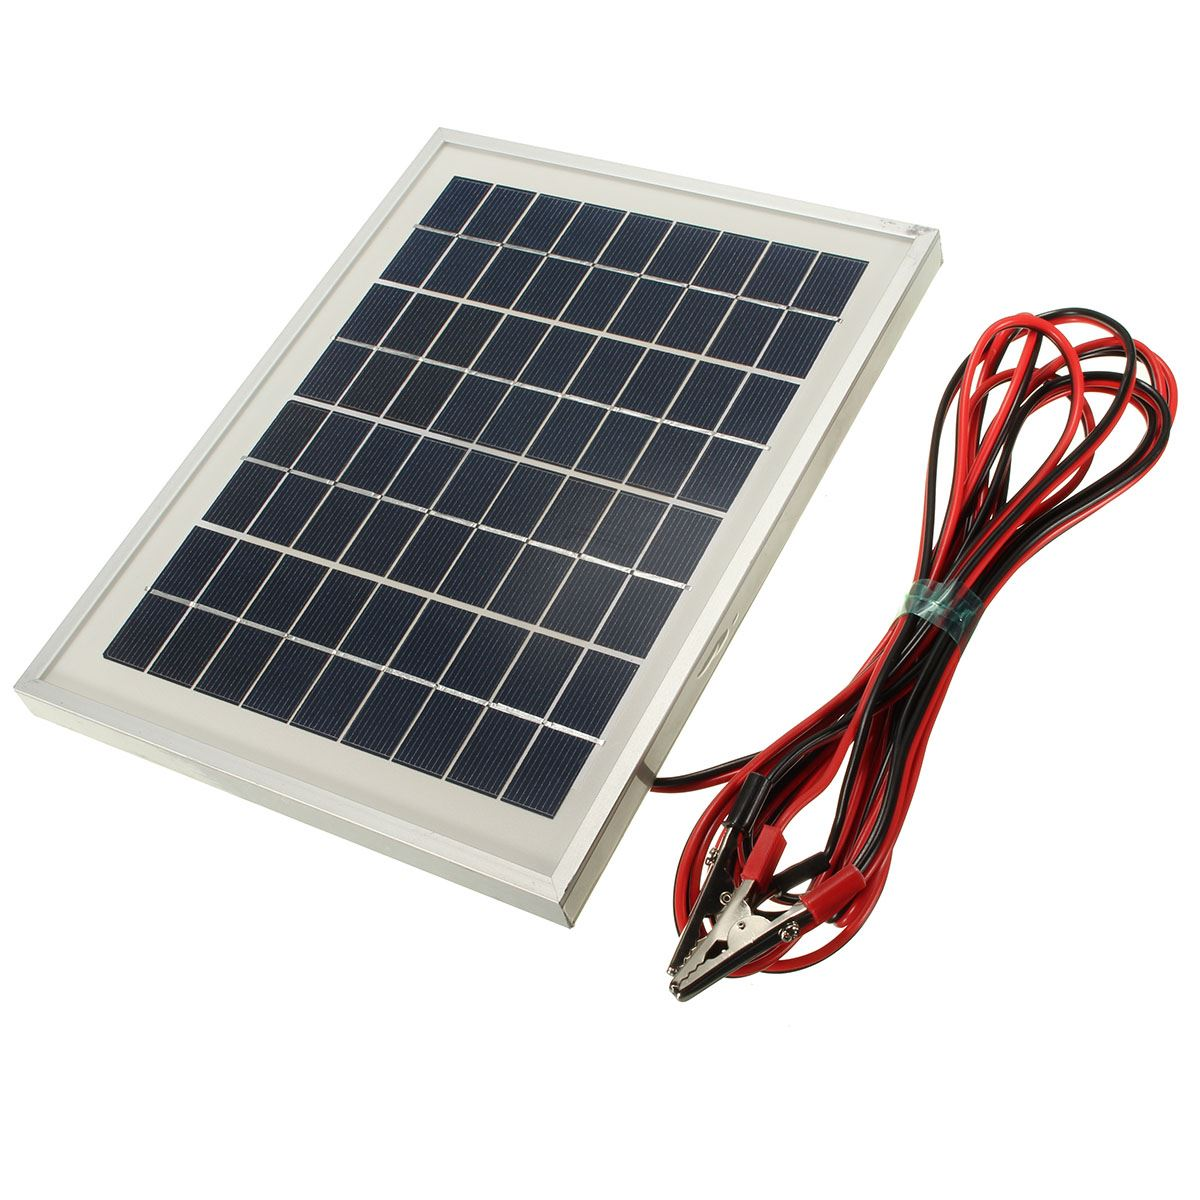 LEORY 5W 12V PolyCrystalline Cells Solar Panel storge energy charger Solar Module with Block Diode+2xAlligator Clips+4m Cable